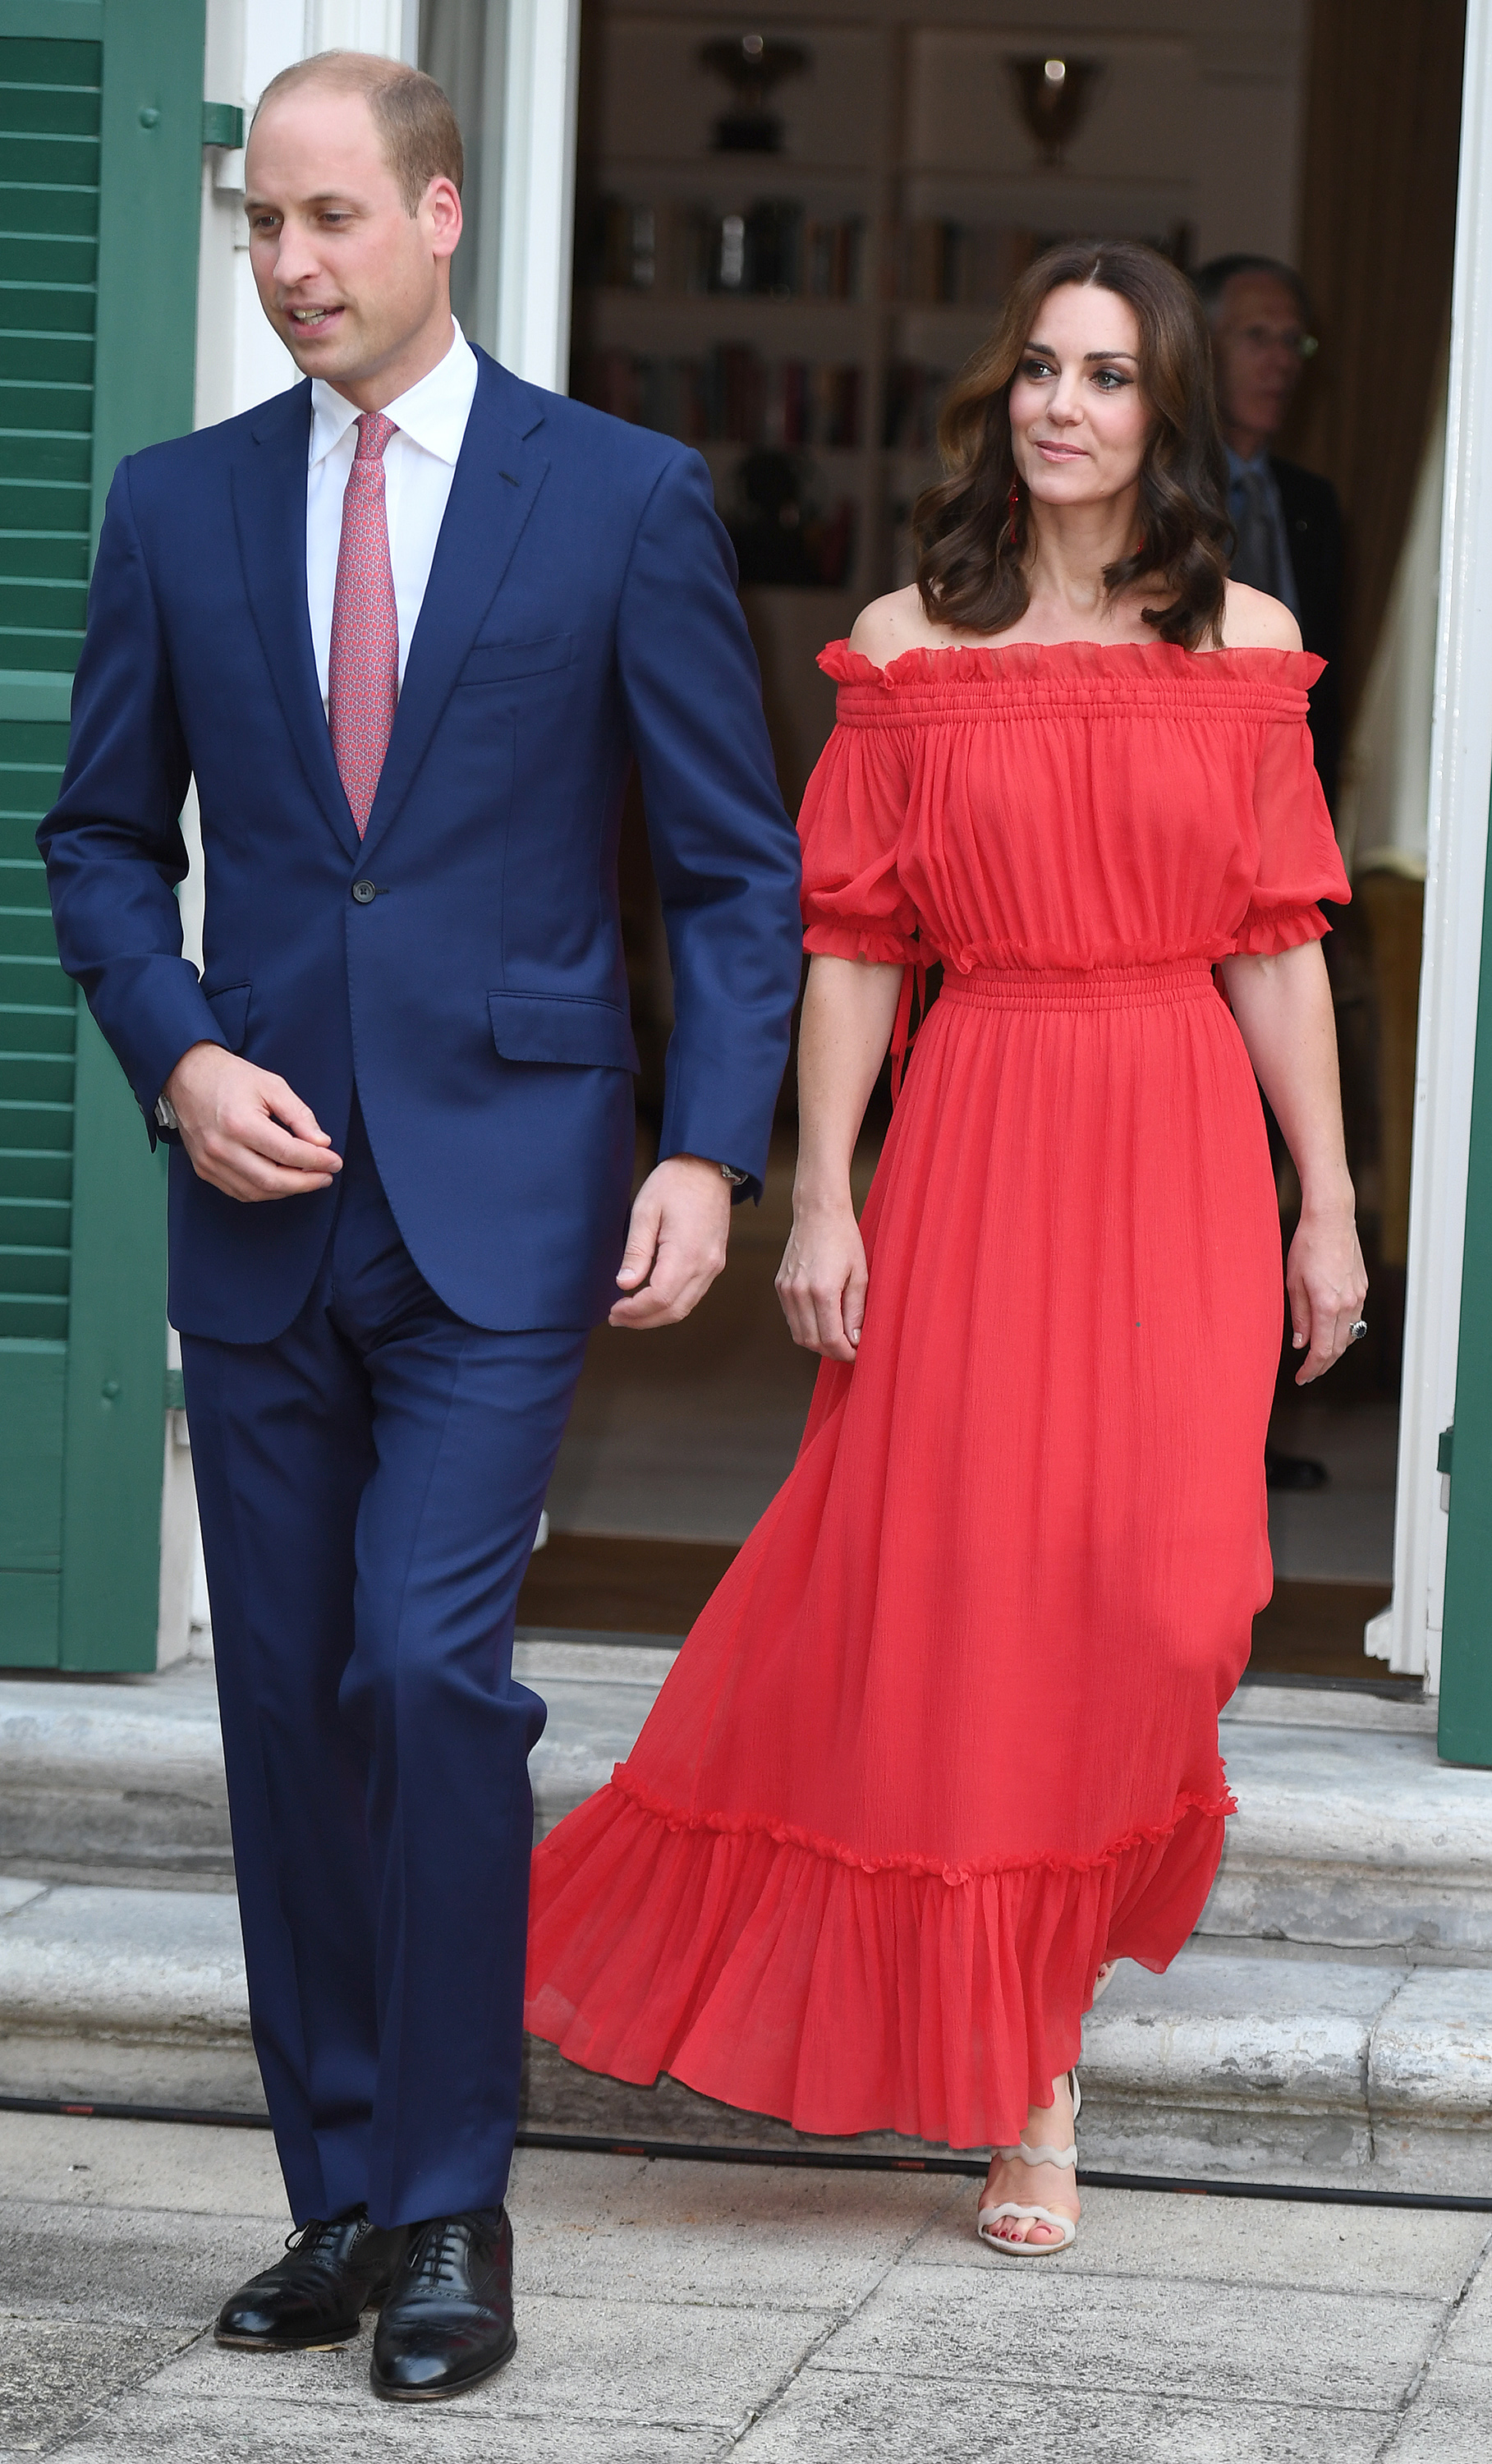 Photo Credit Must Read Zak Hussein<BR/> Prince William, the Duke of Cambridge and Catherine, the Duchess of Cambridge attend The Queen's Birthday Party in Germany at the British Ambassadorial Residence in Berlin <P> Pictured: Prince William, the Duke of Cambridge and Catherine, the Duchess of Cambridge <B>Ref: SPL1541298  200717  </B><BR/> Picture by: Zak Hussein<BR/> </P><P>